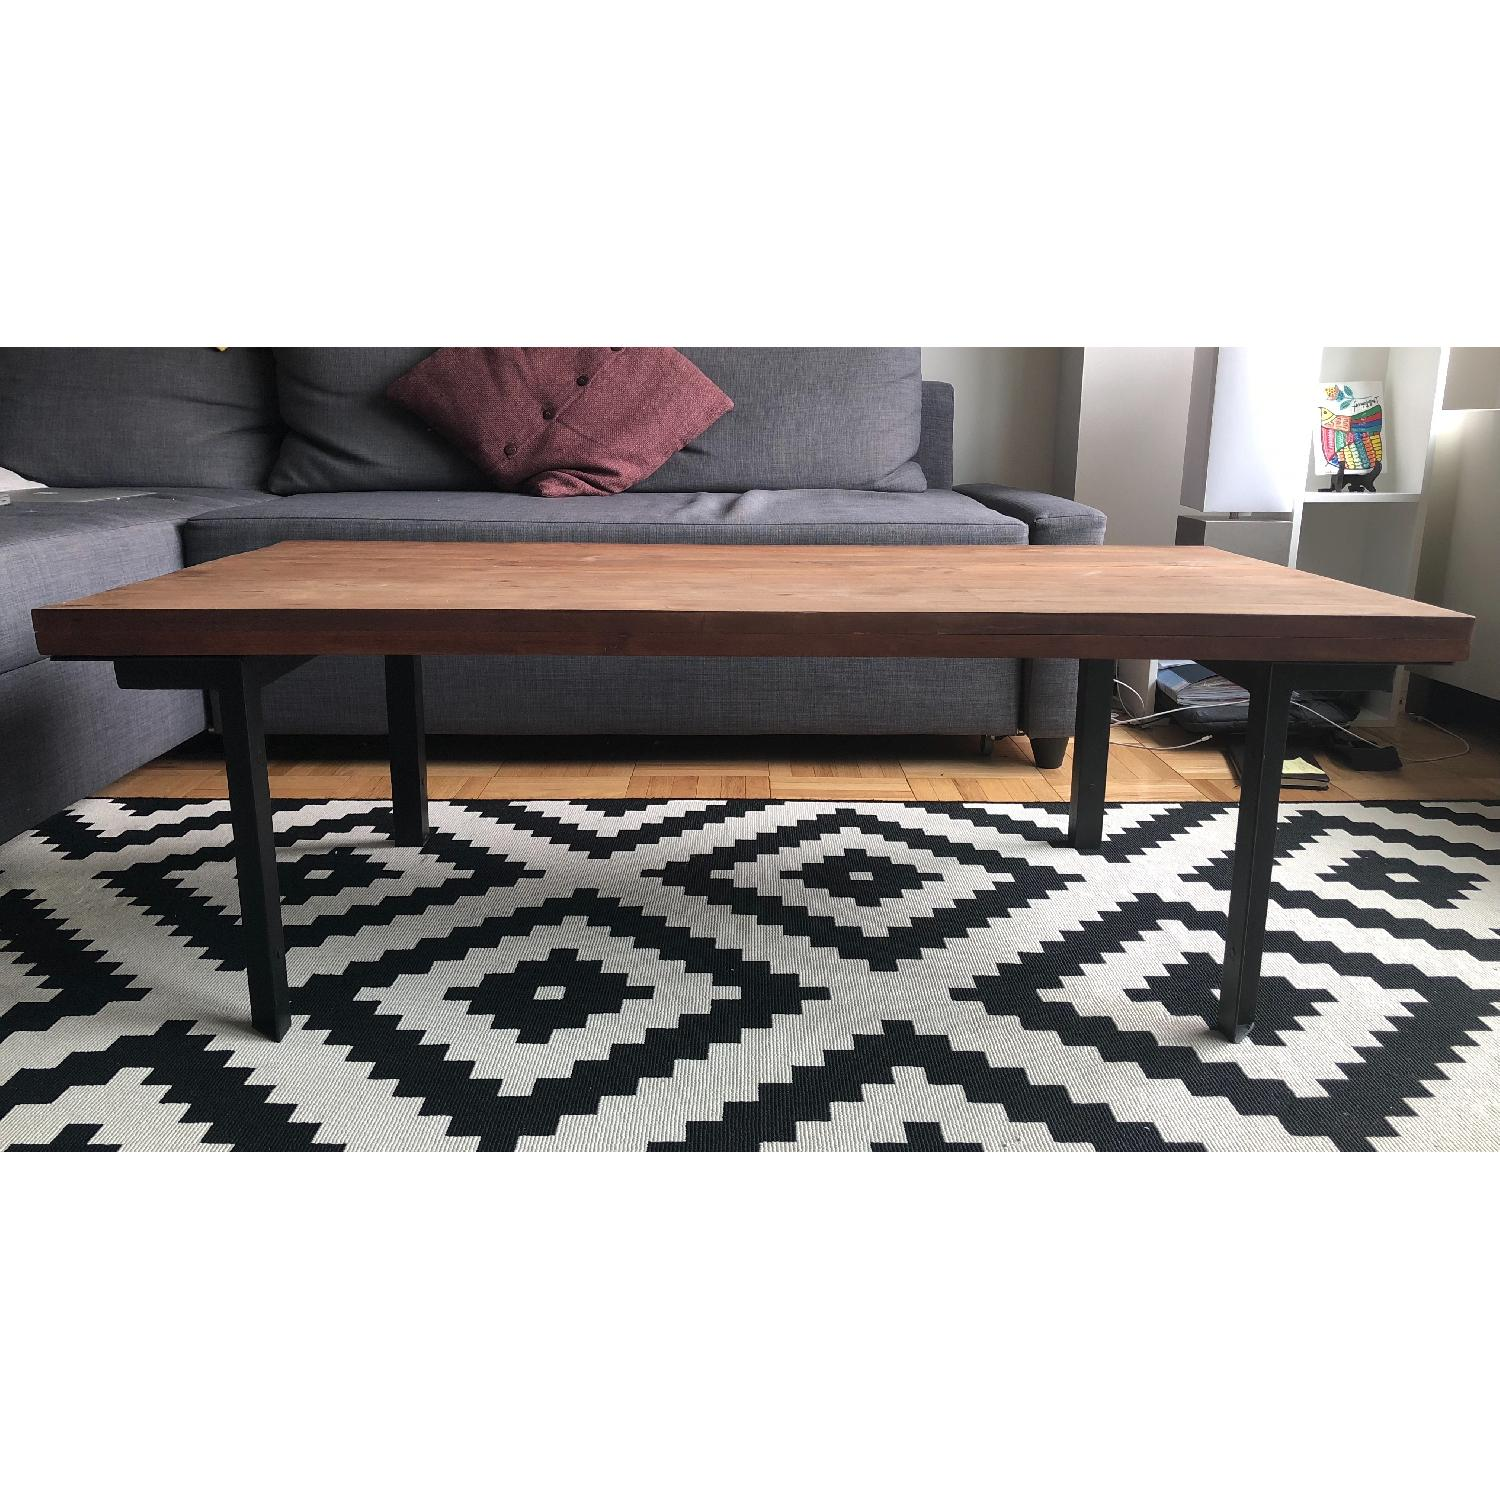 West Elm Coffee Table w Reclaimed Wood Iron Legs AptDeco